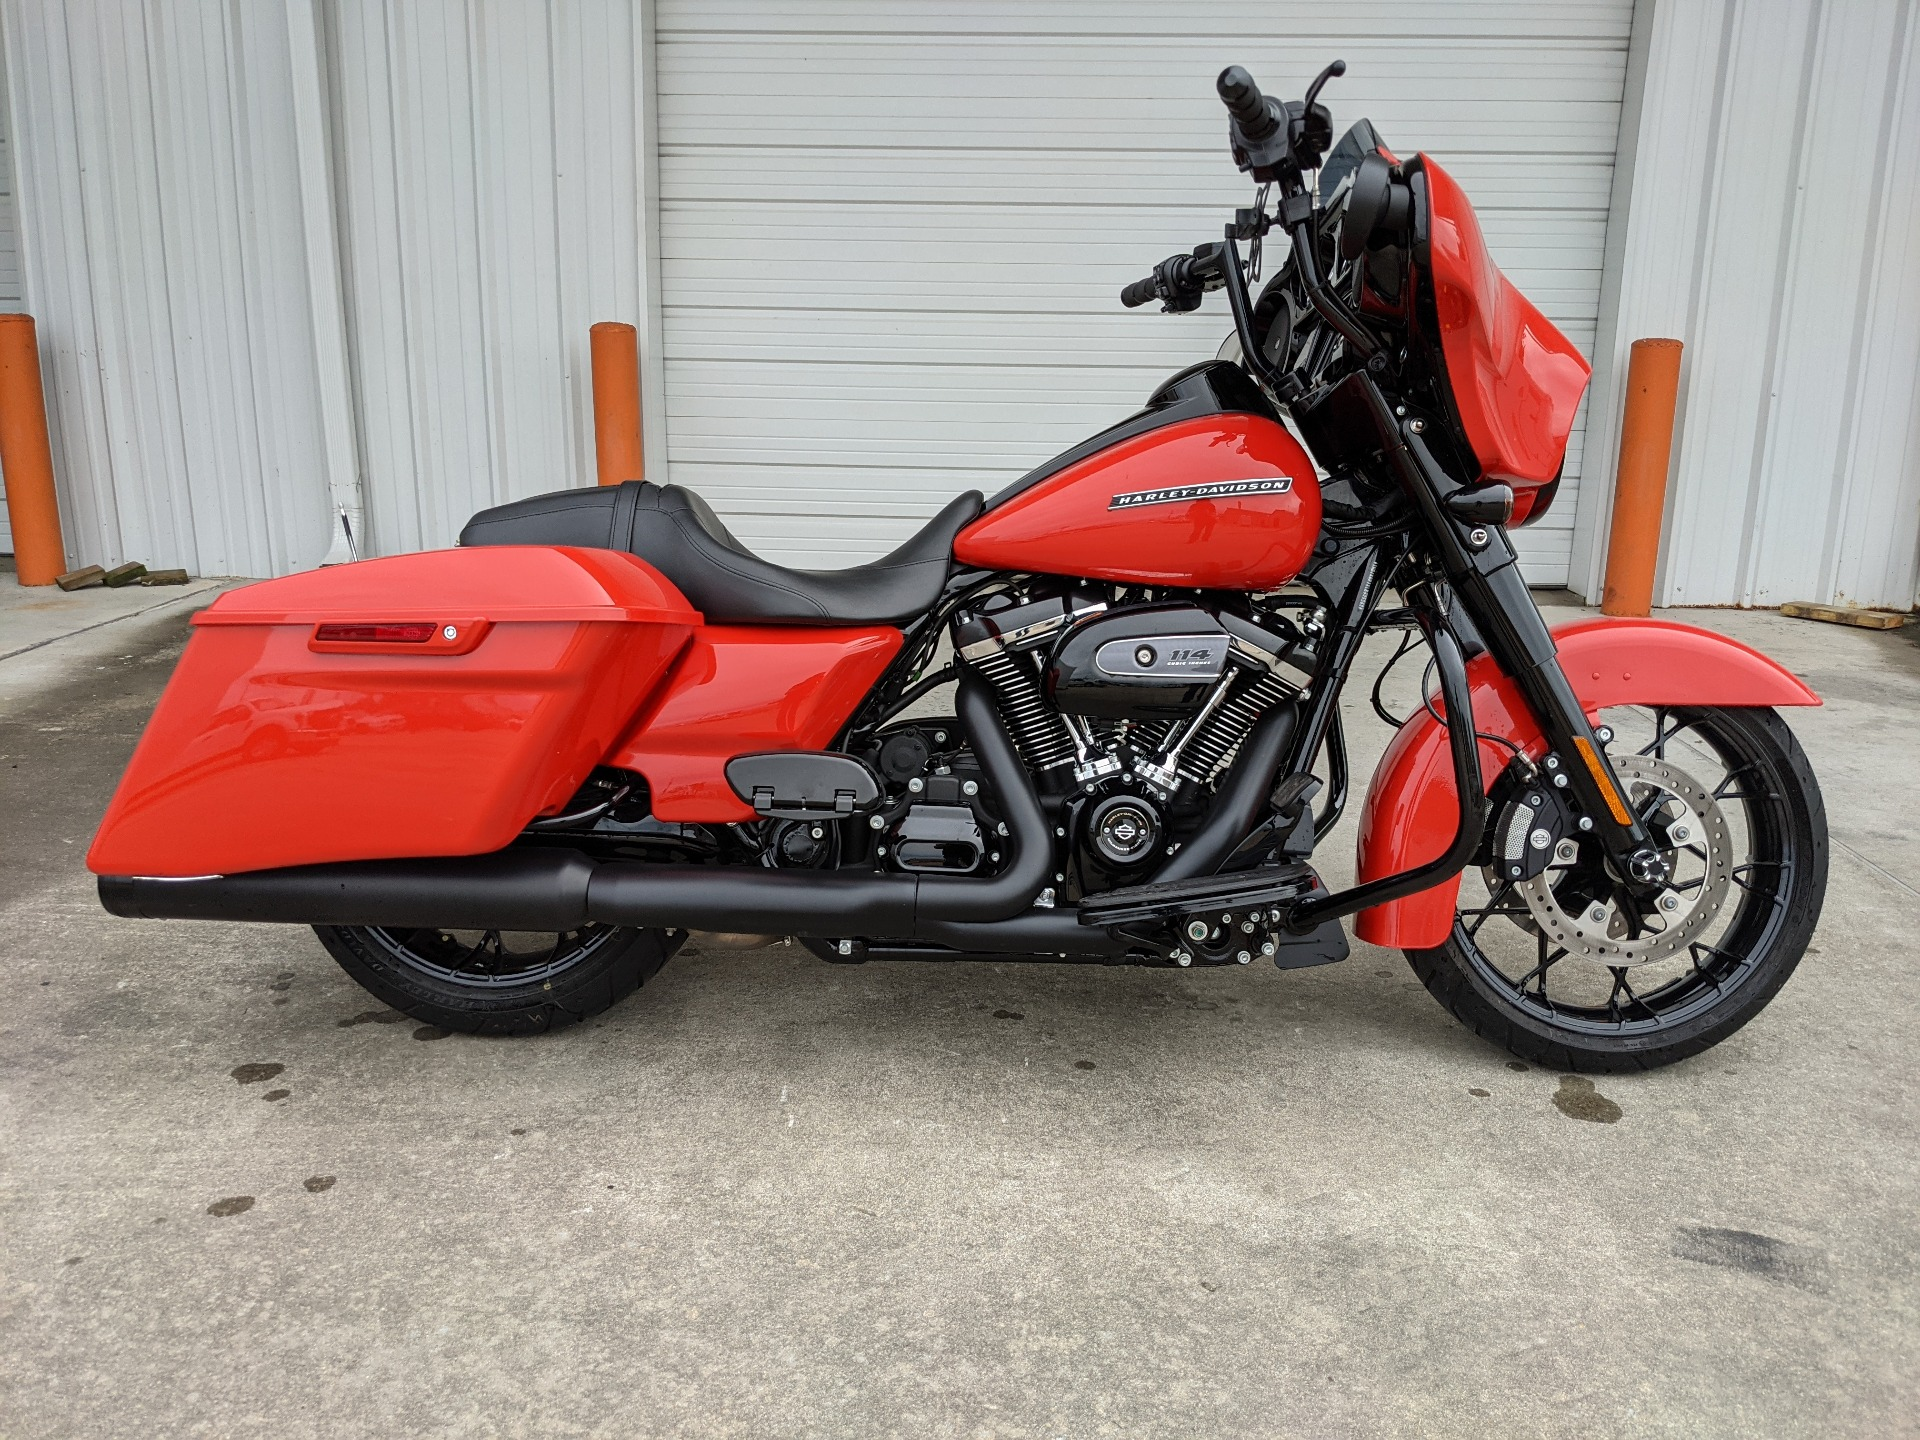 2020 Harley-Davidson Street Glide Special for sale low miles - Photo 13